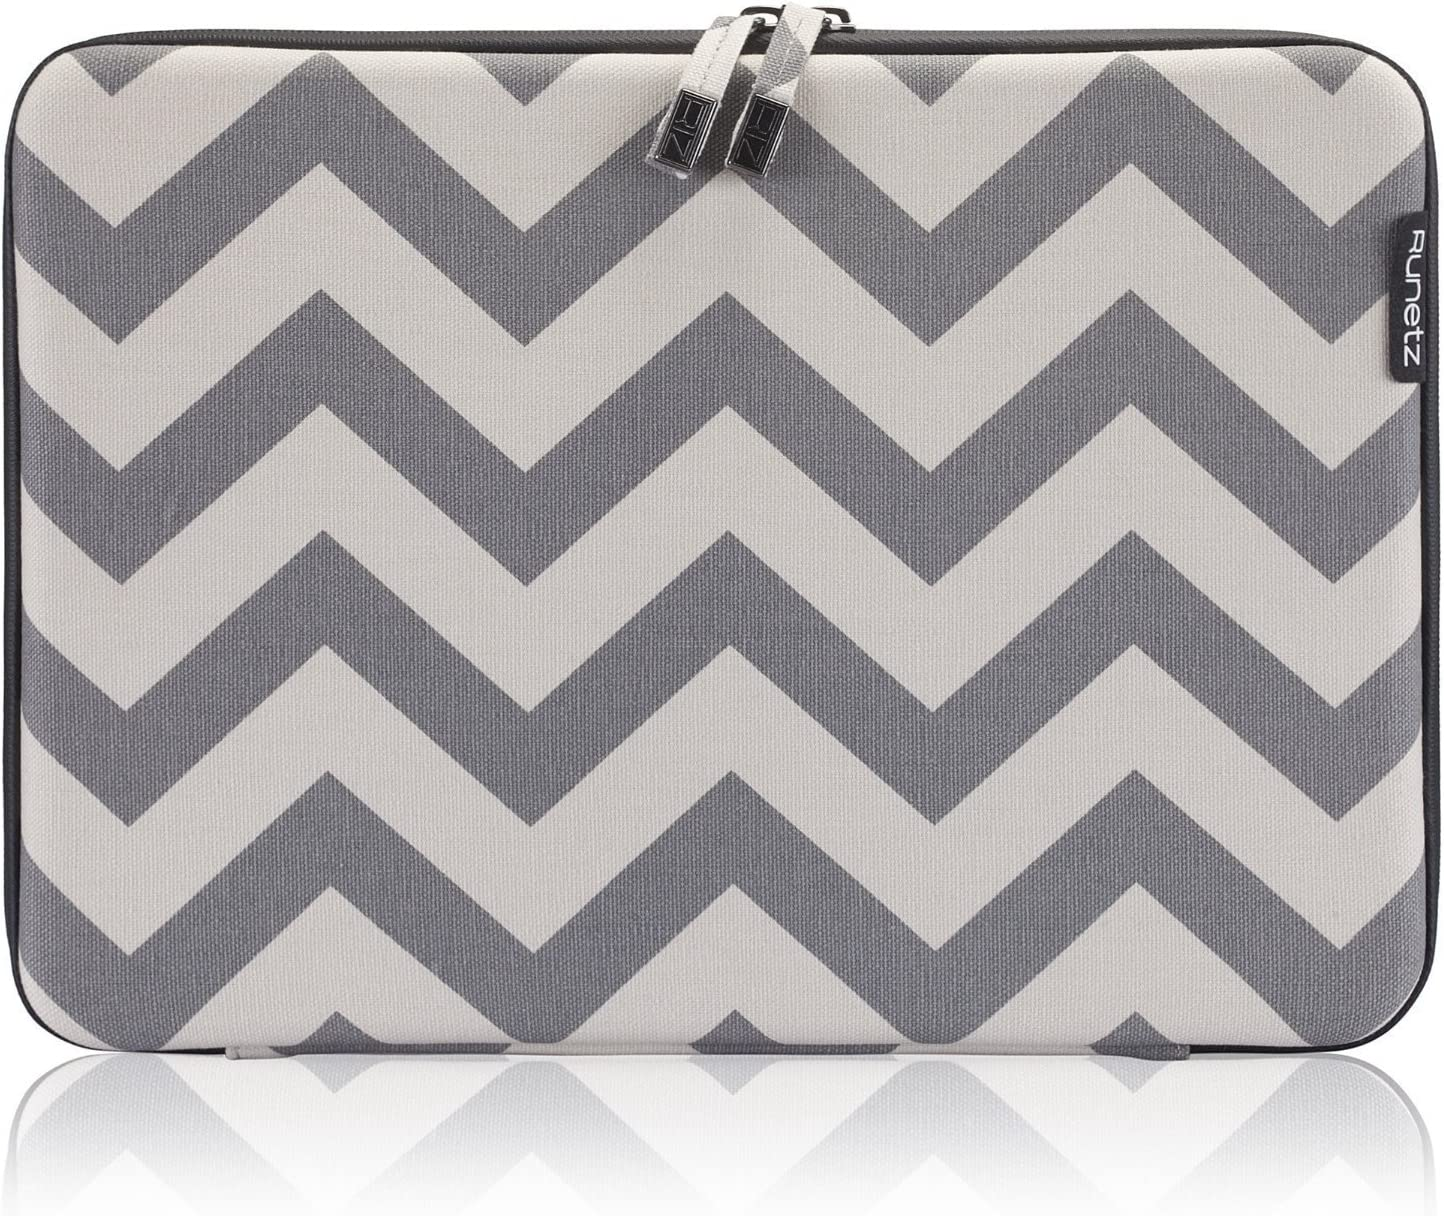 Runetz - MacBook Pro 15 inch Sleeve Hard Laptop Sleeve 15.4 inch Sleeve Notebook Computer Bag Protective Case Cover with Zipper - Chevron Gray